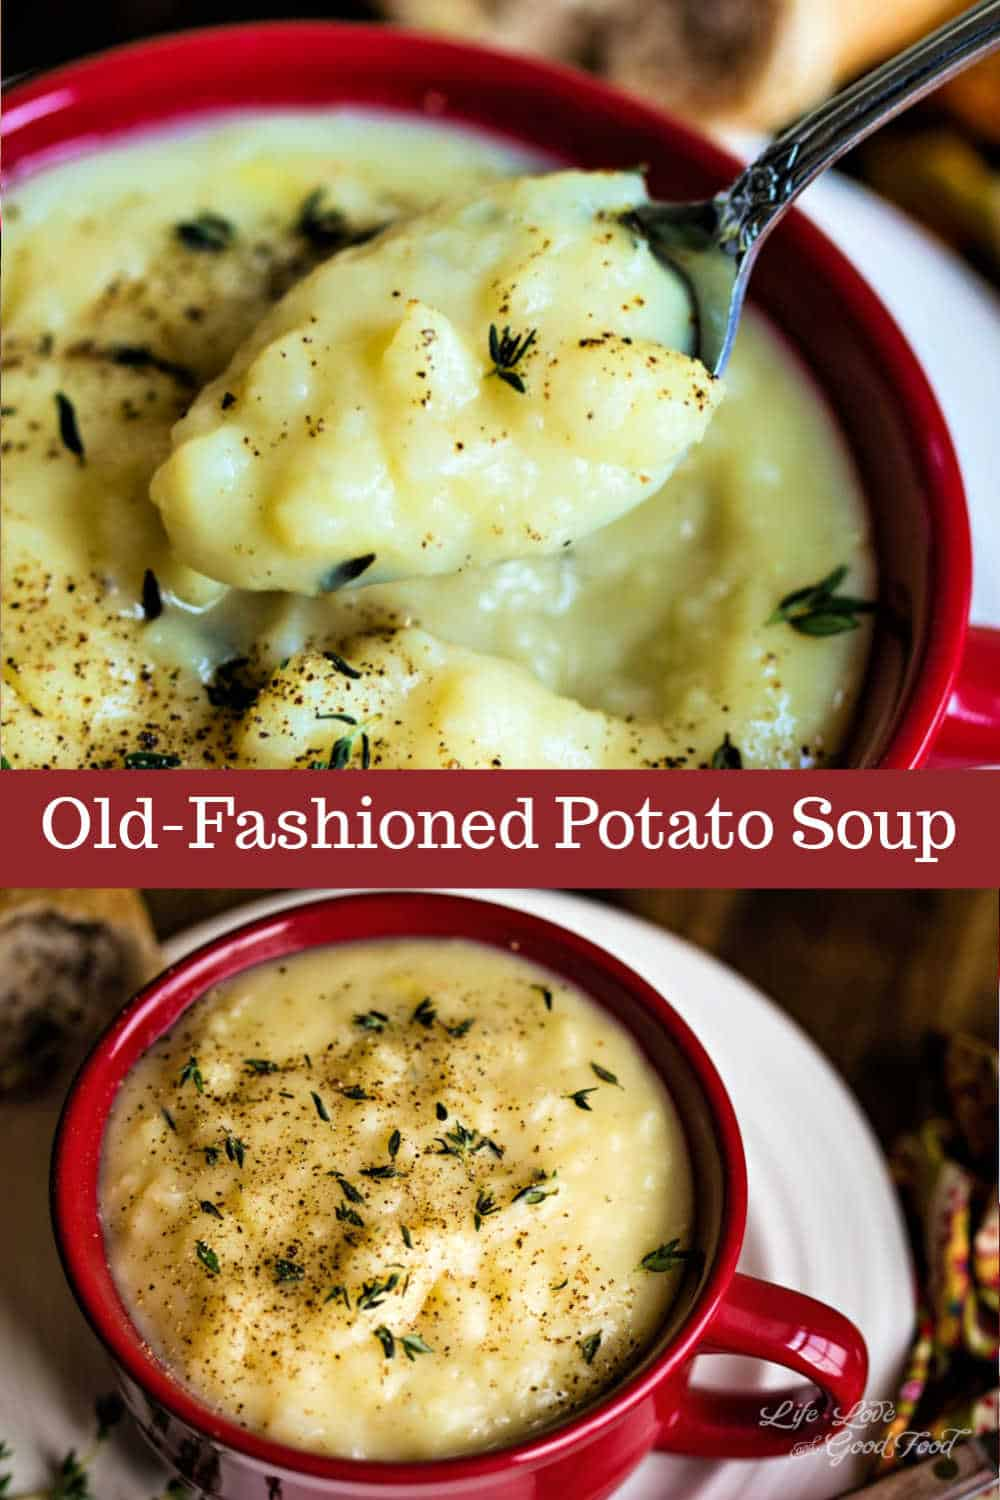 This lightened up version of Old-Fashioned Potato Soup is one creamy, delicious bowl of comfort food that won't leave you feeling guilty. Made from scratch and flavored with yellow onions sautéed in butter, this easy potato soup recipe only takes 30 minutes start to finish.